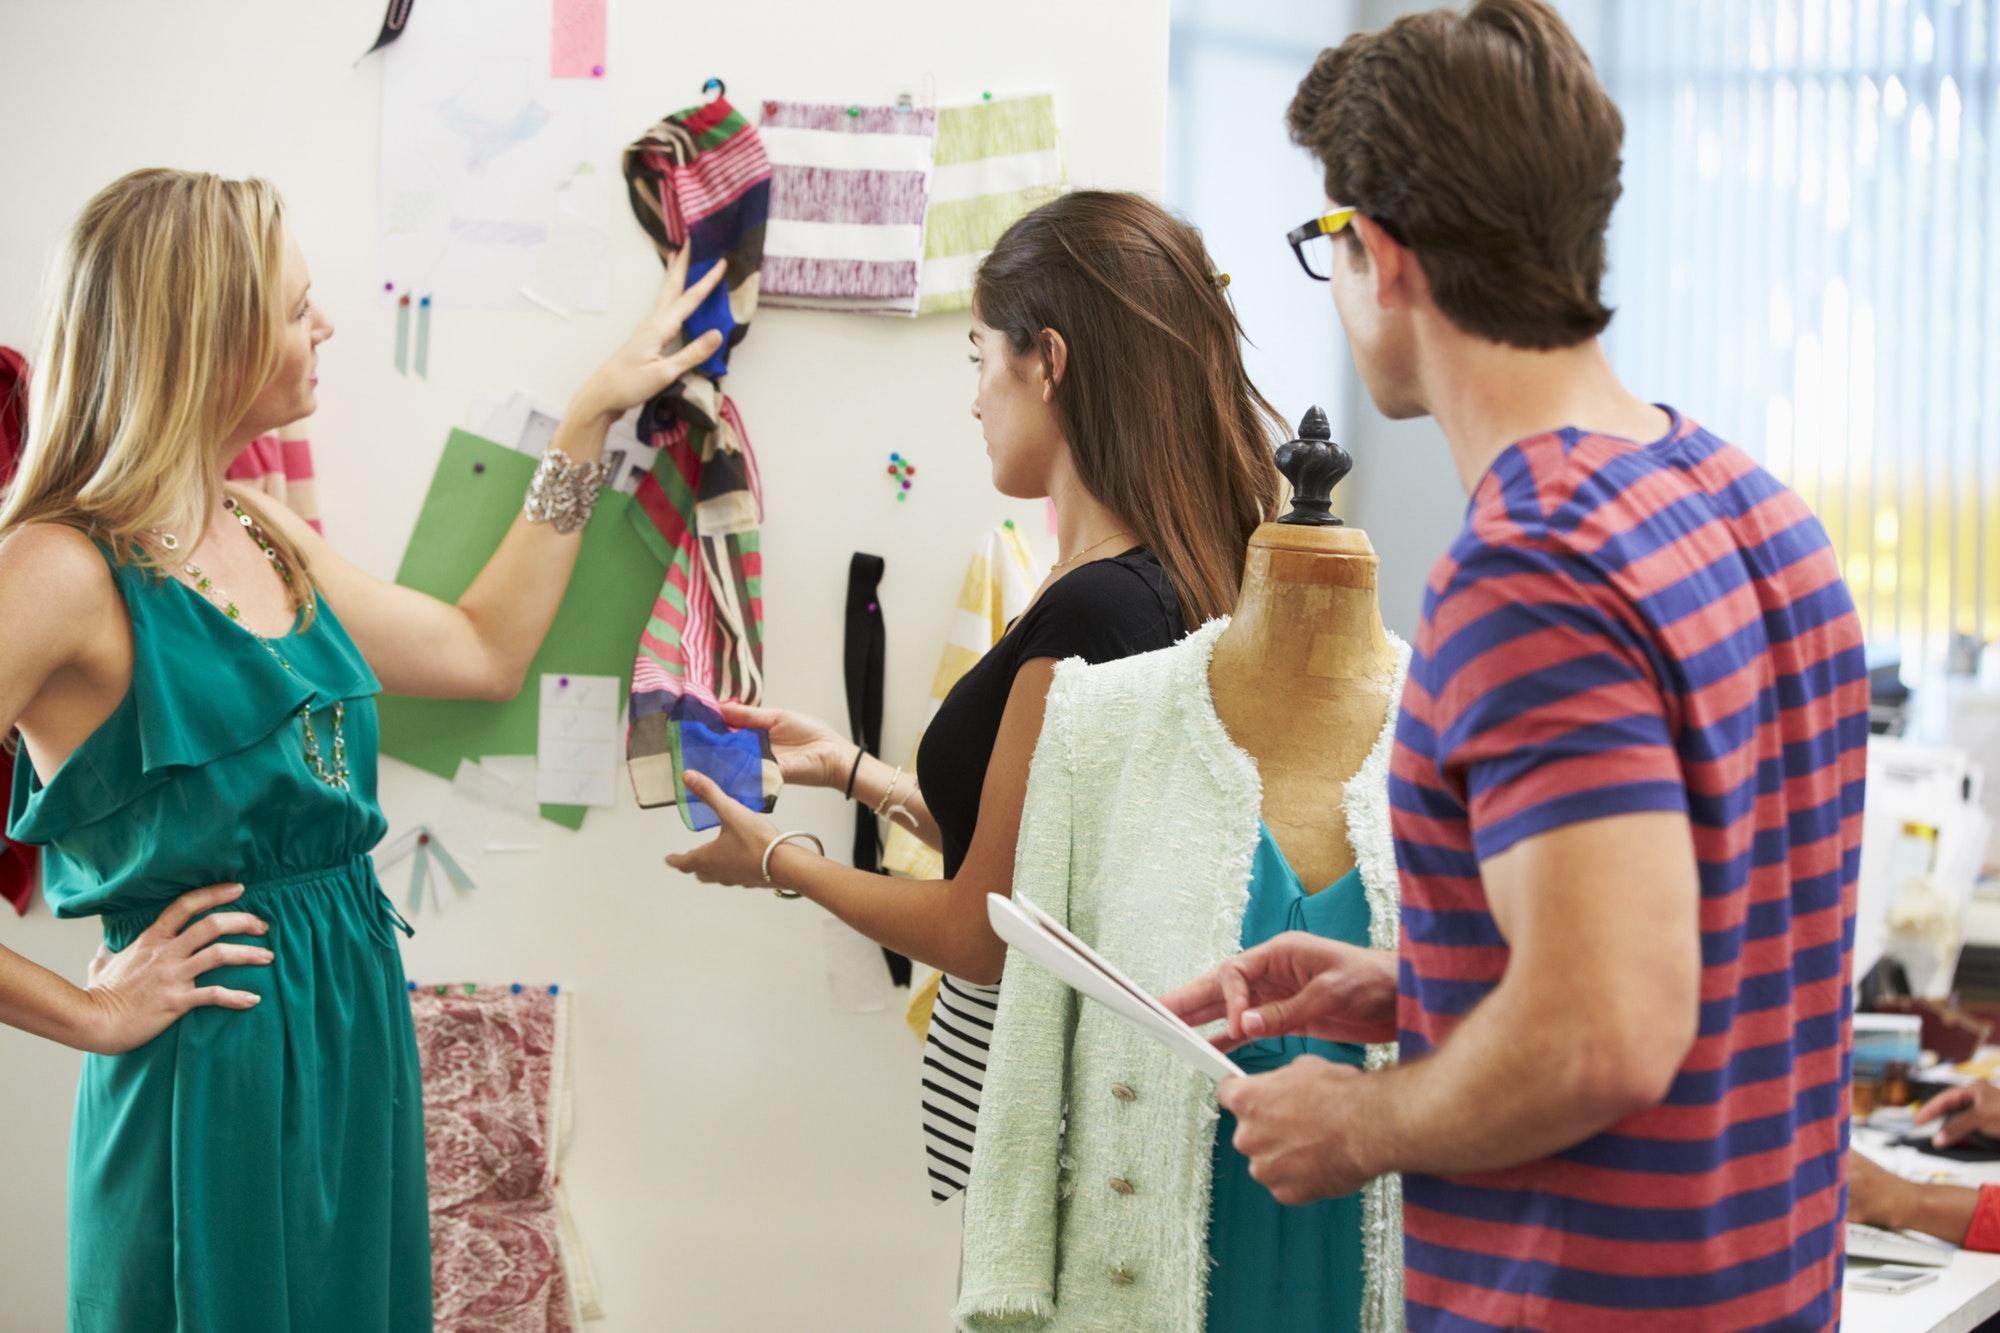 5 Incredible Reasons Why Fashion Designing Is An Interesting Career Choice